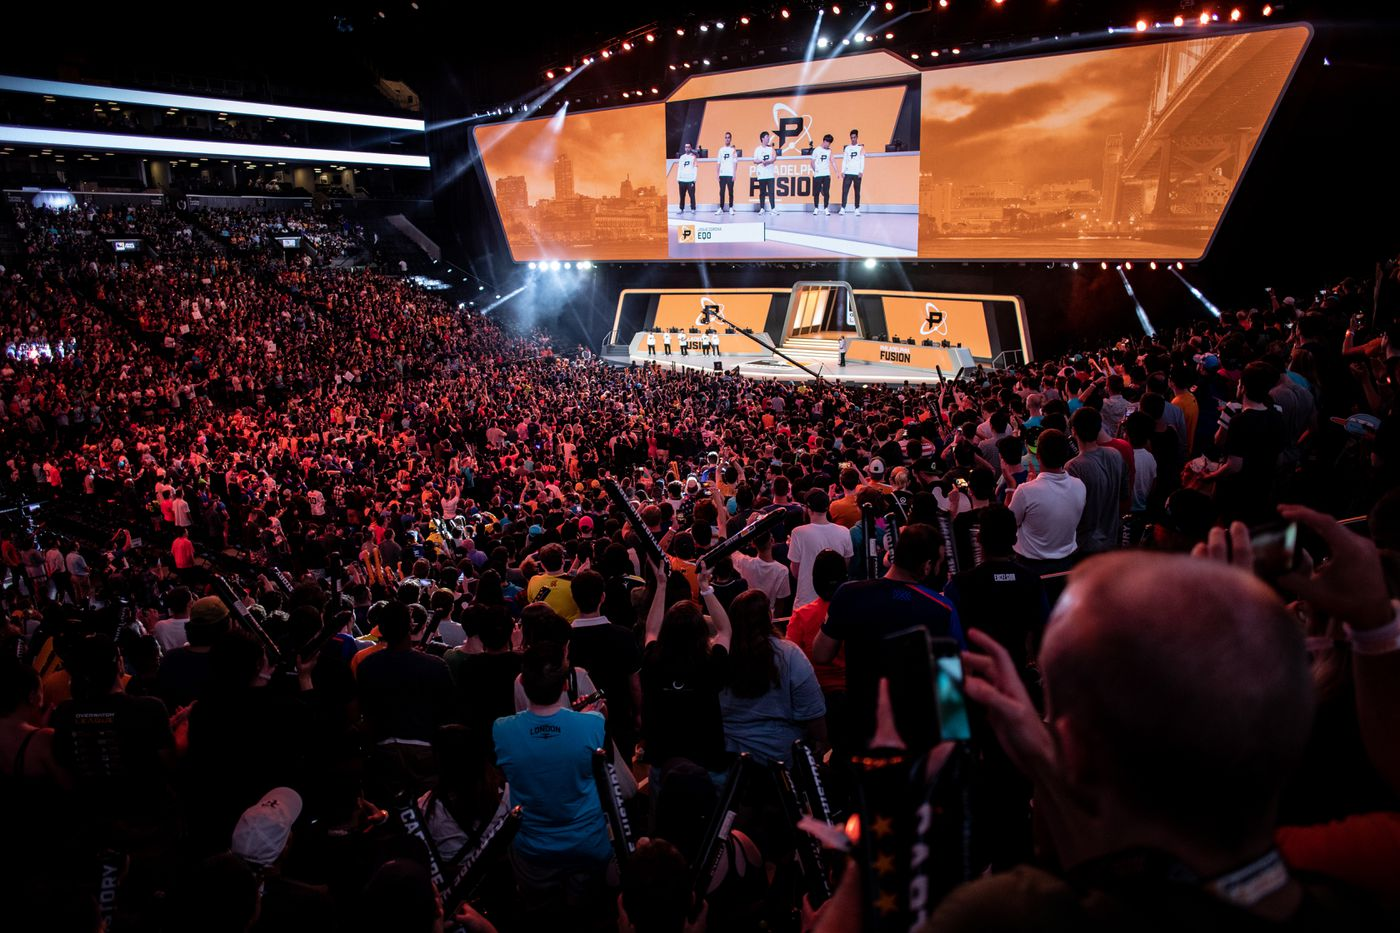 Philadelphia Fusion gaming team gears up for second season